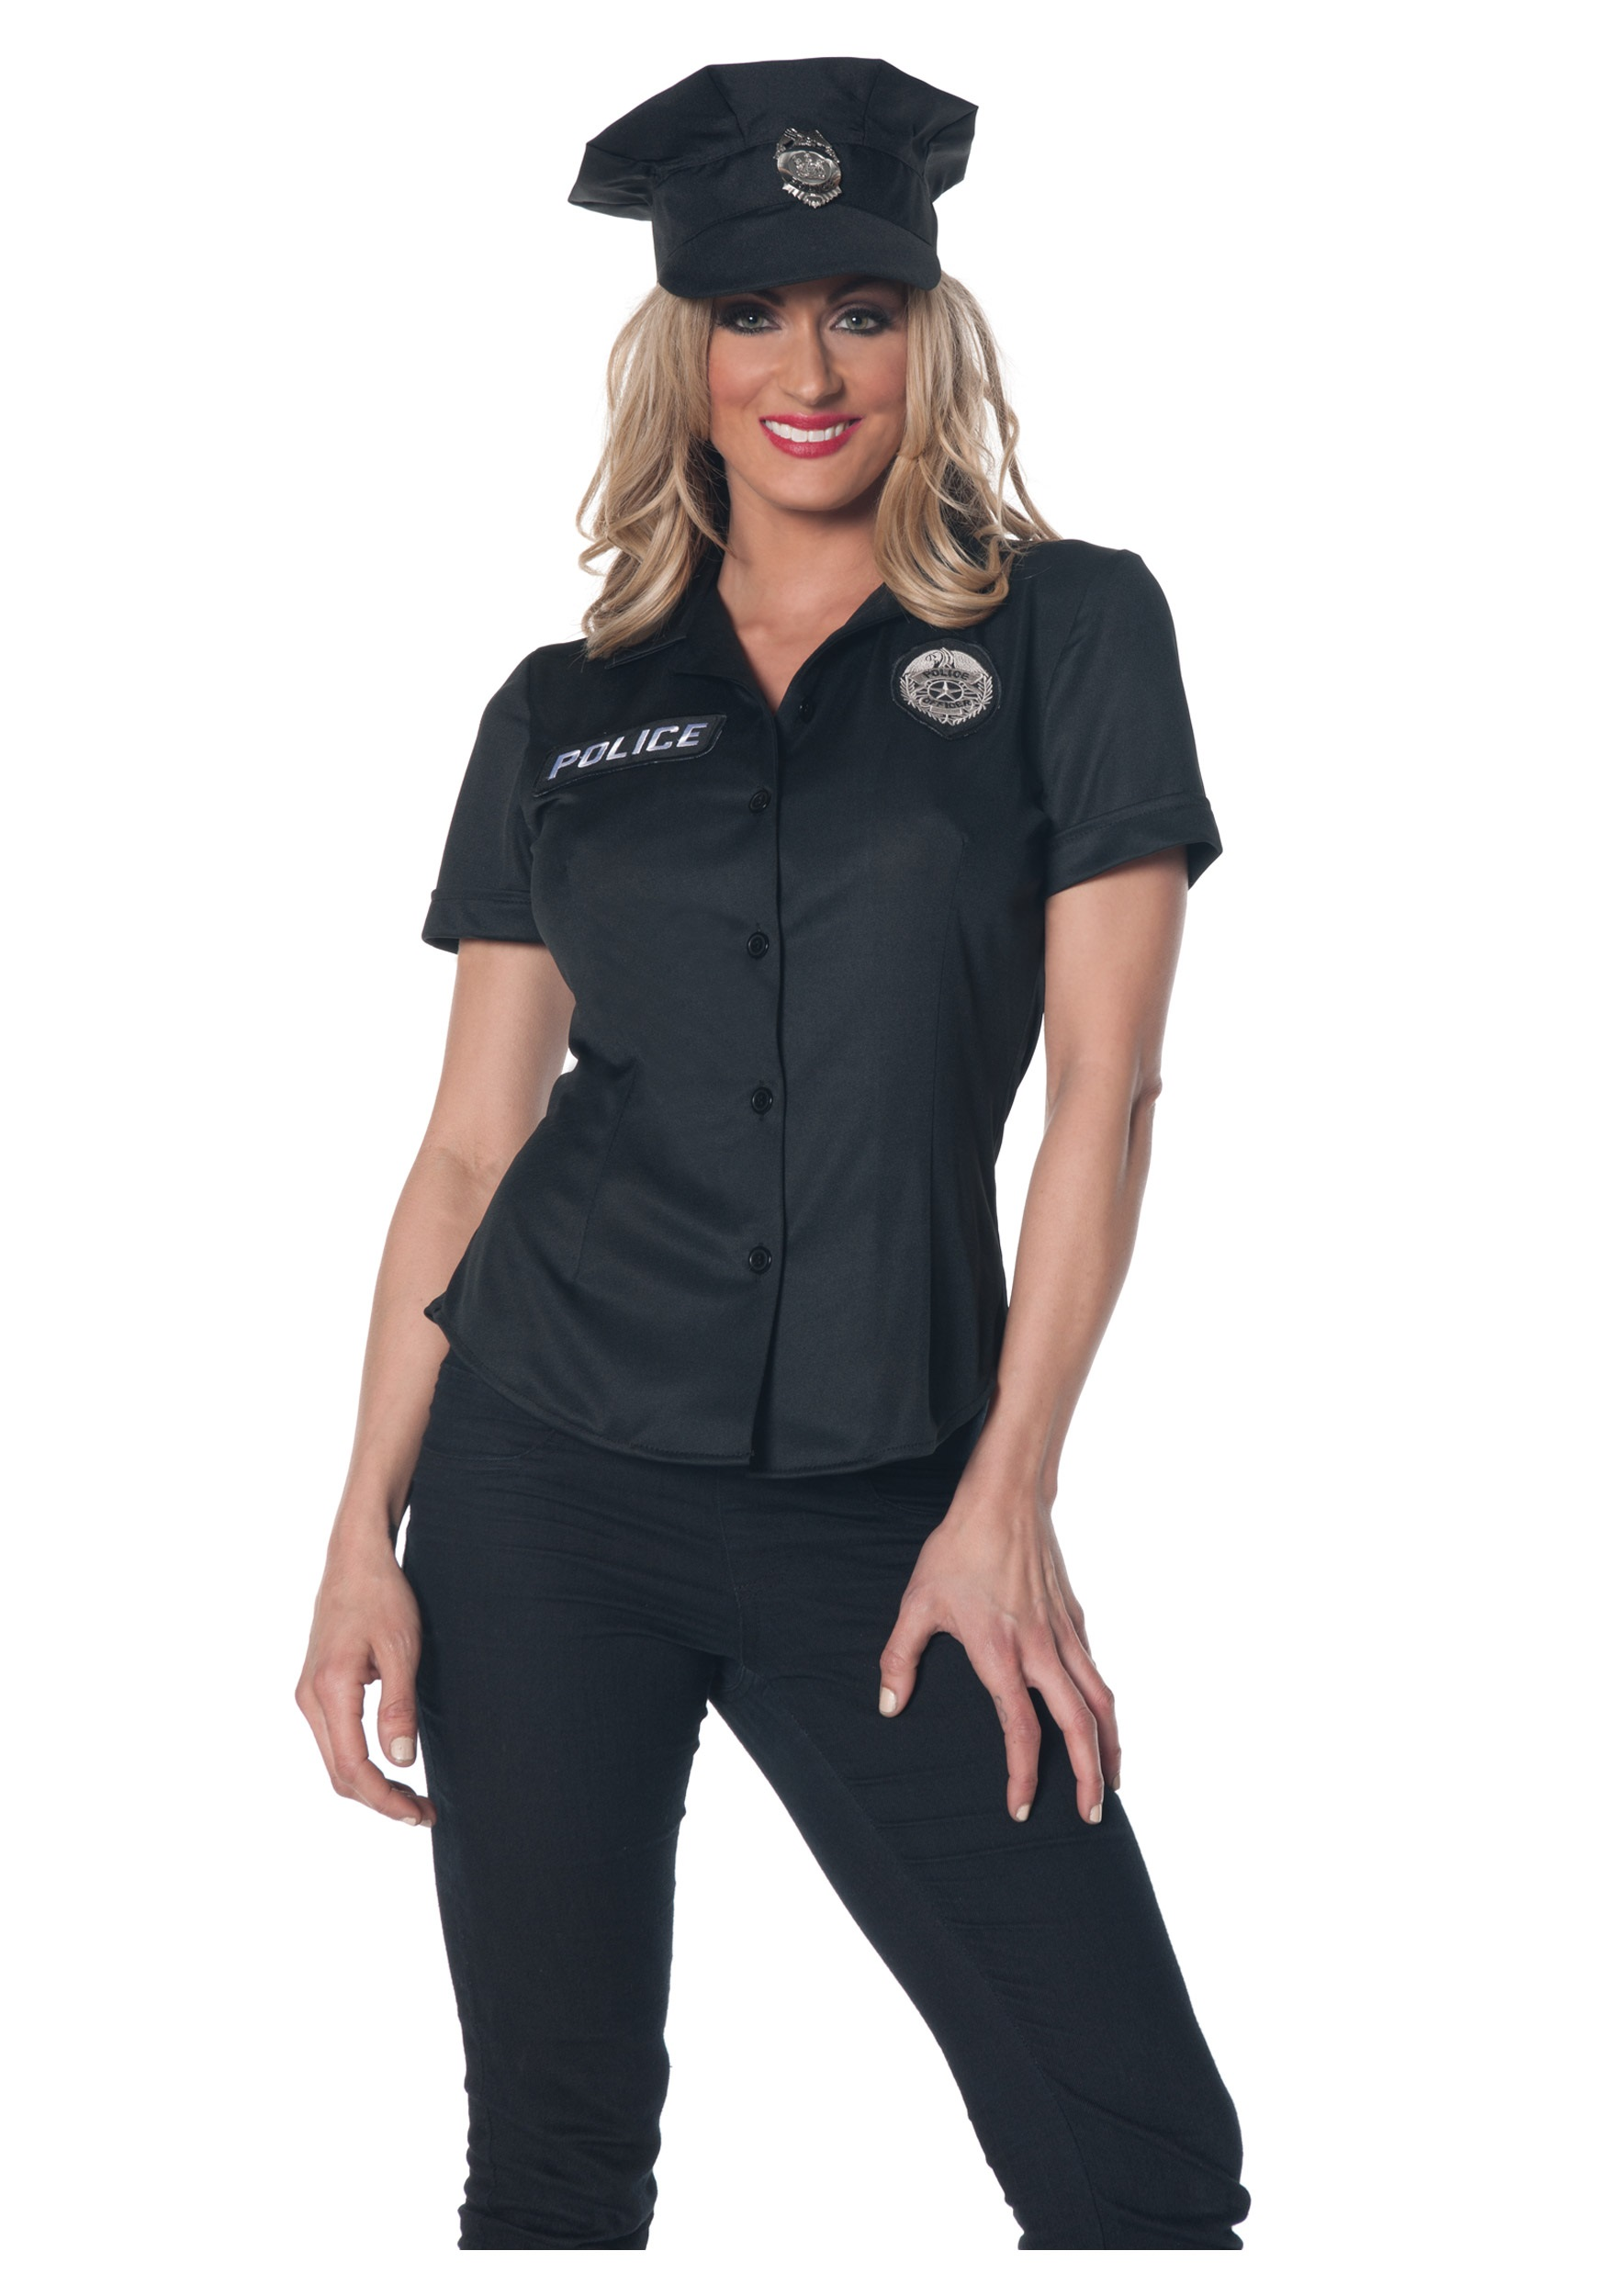 Womens Police Shirt Costume-6946